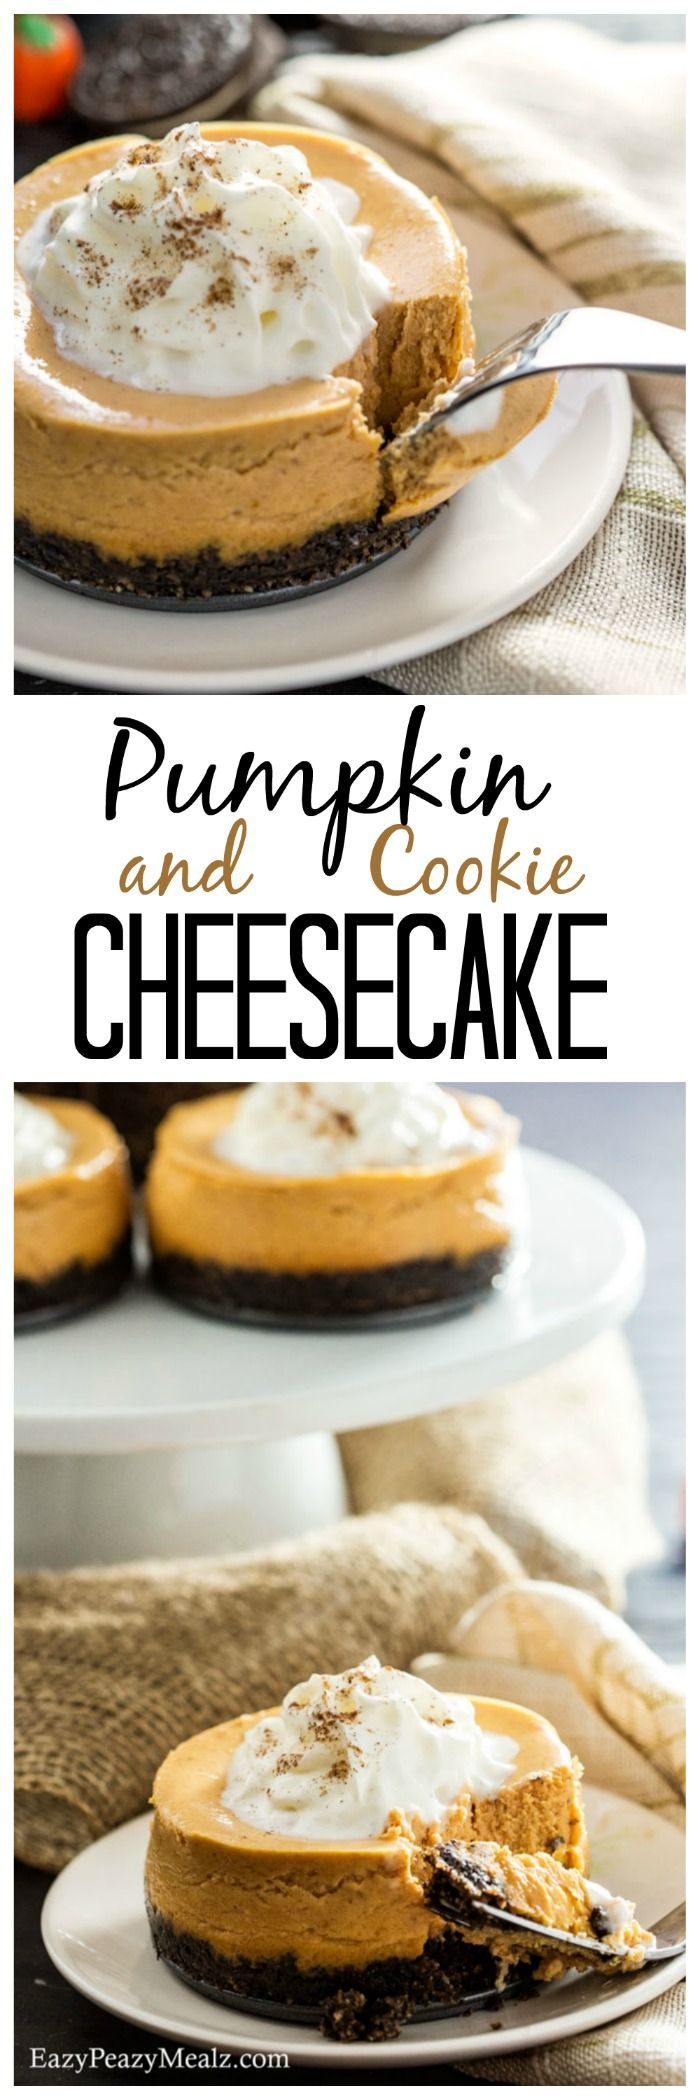 Pumpkin Cookie Cheesecake is light, airy, and oh so delicious, plus easy to make. Perfect for your Thanksgiving dessert table!